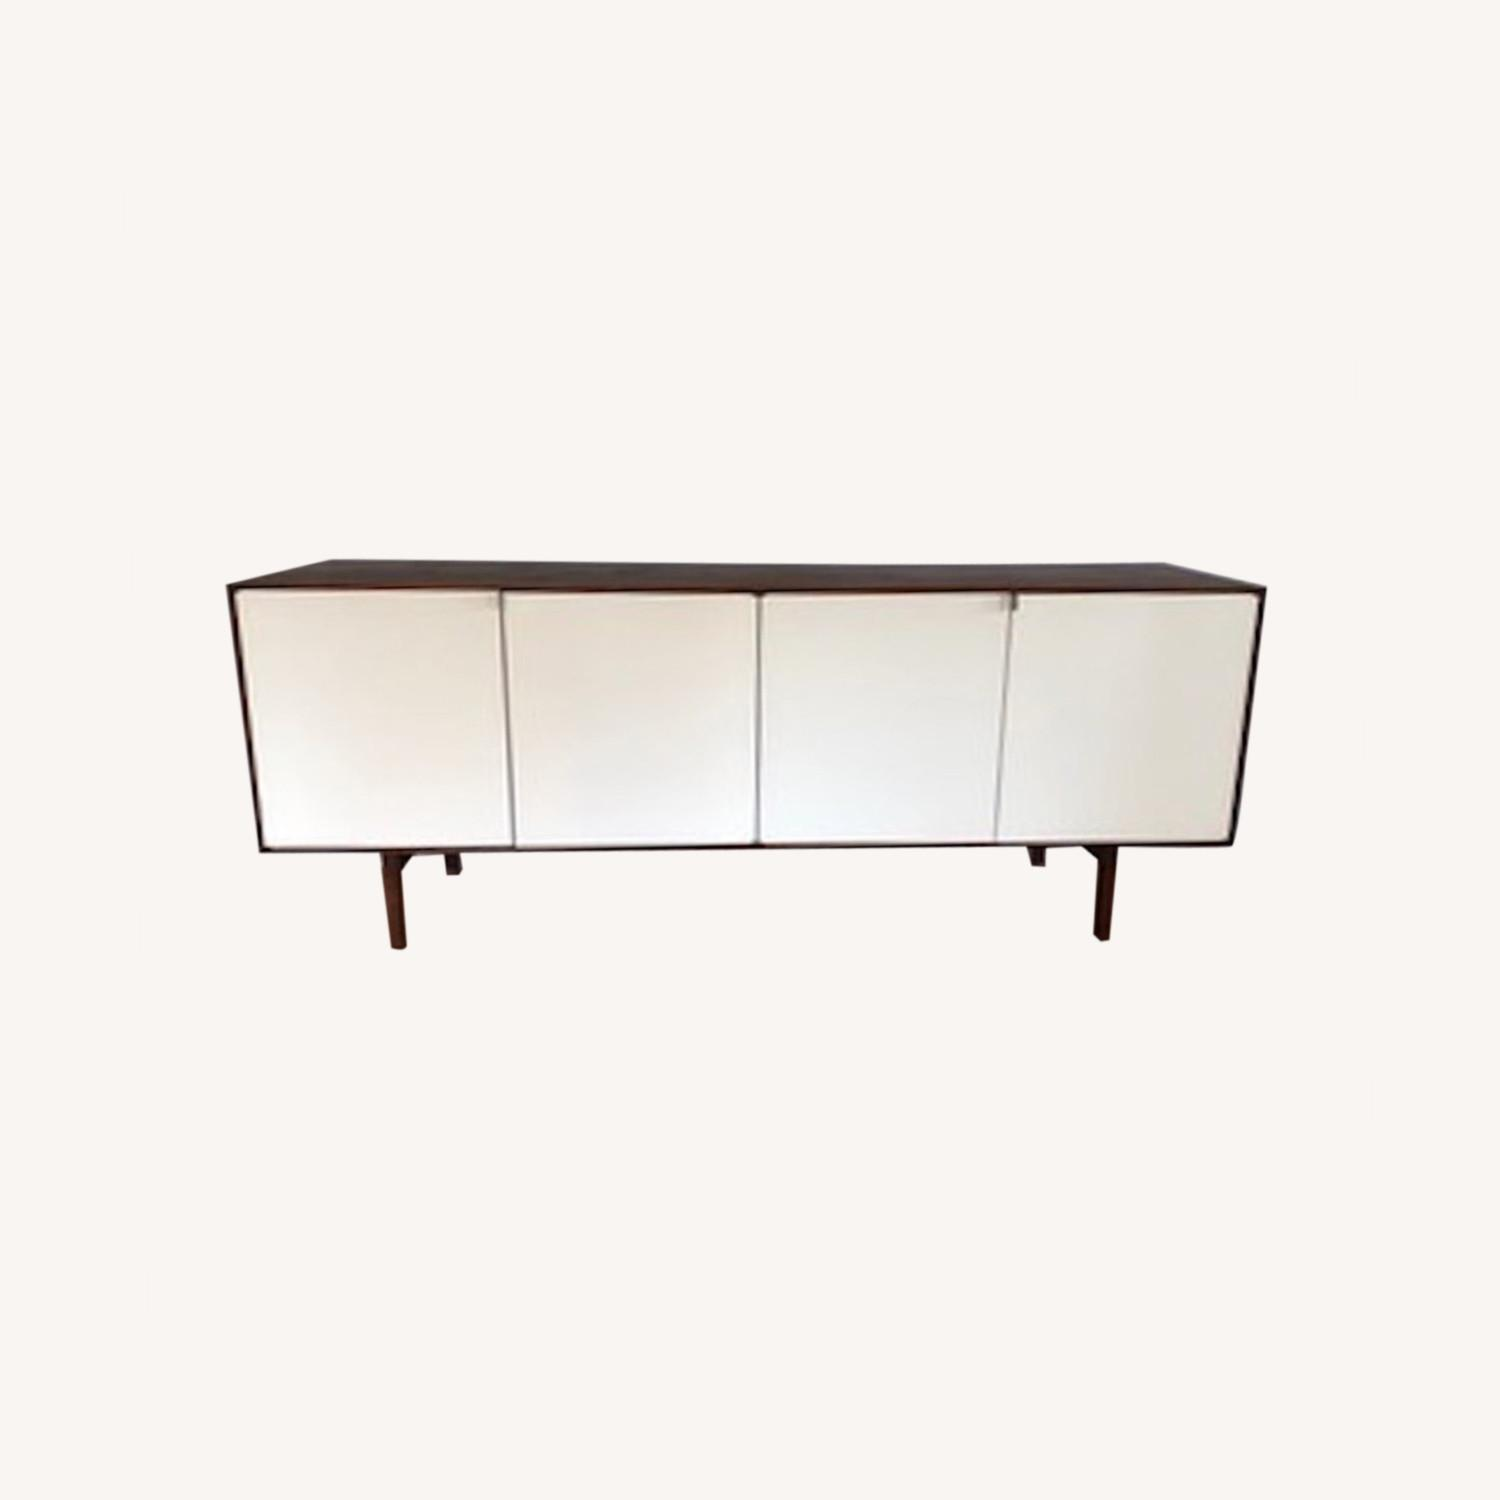 Vintage Florence Knoll Mid-Century Credenza - image-0